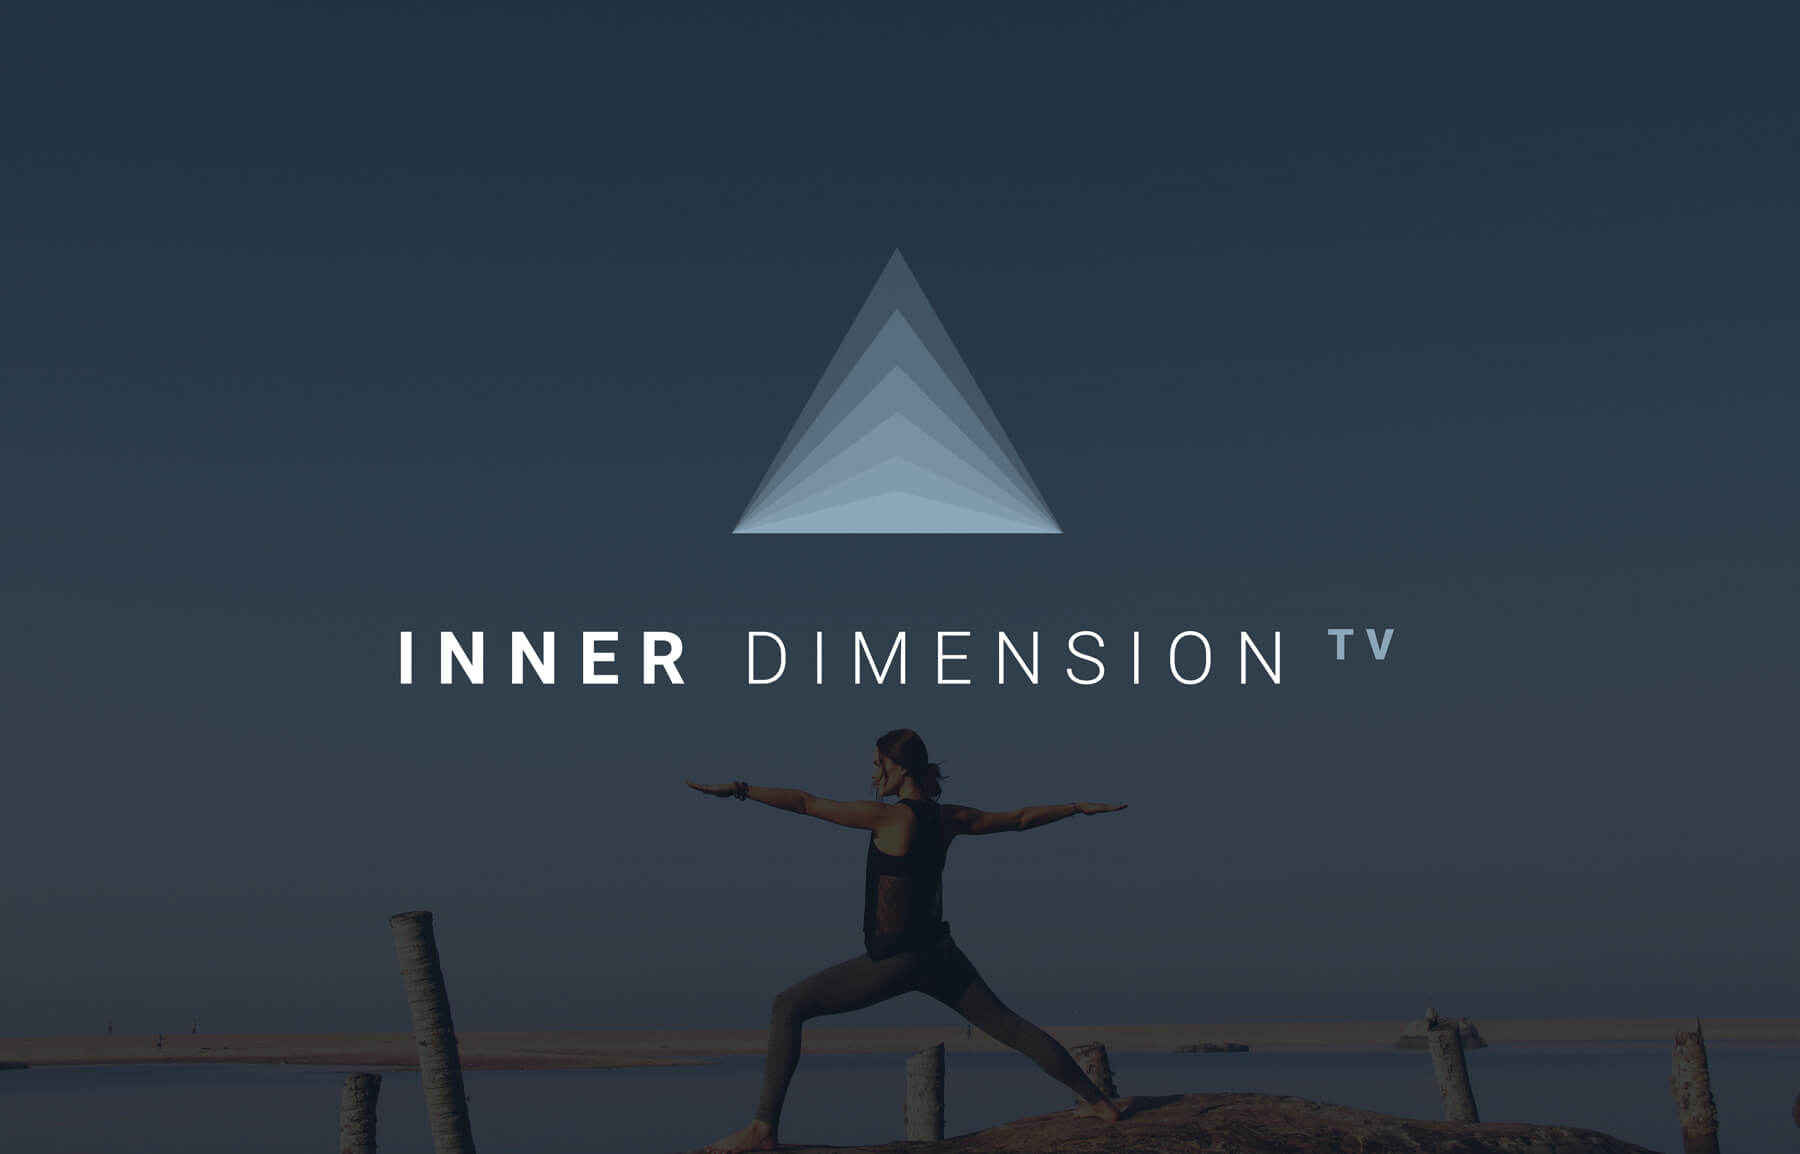 Inner Dimension TV A monthly subscription platform full of high-quality cinematic yoga, meditation and personal growth content